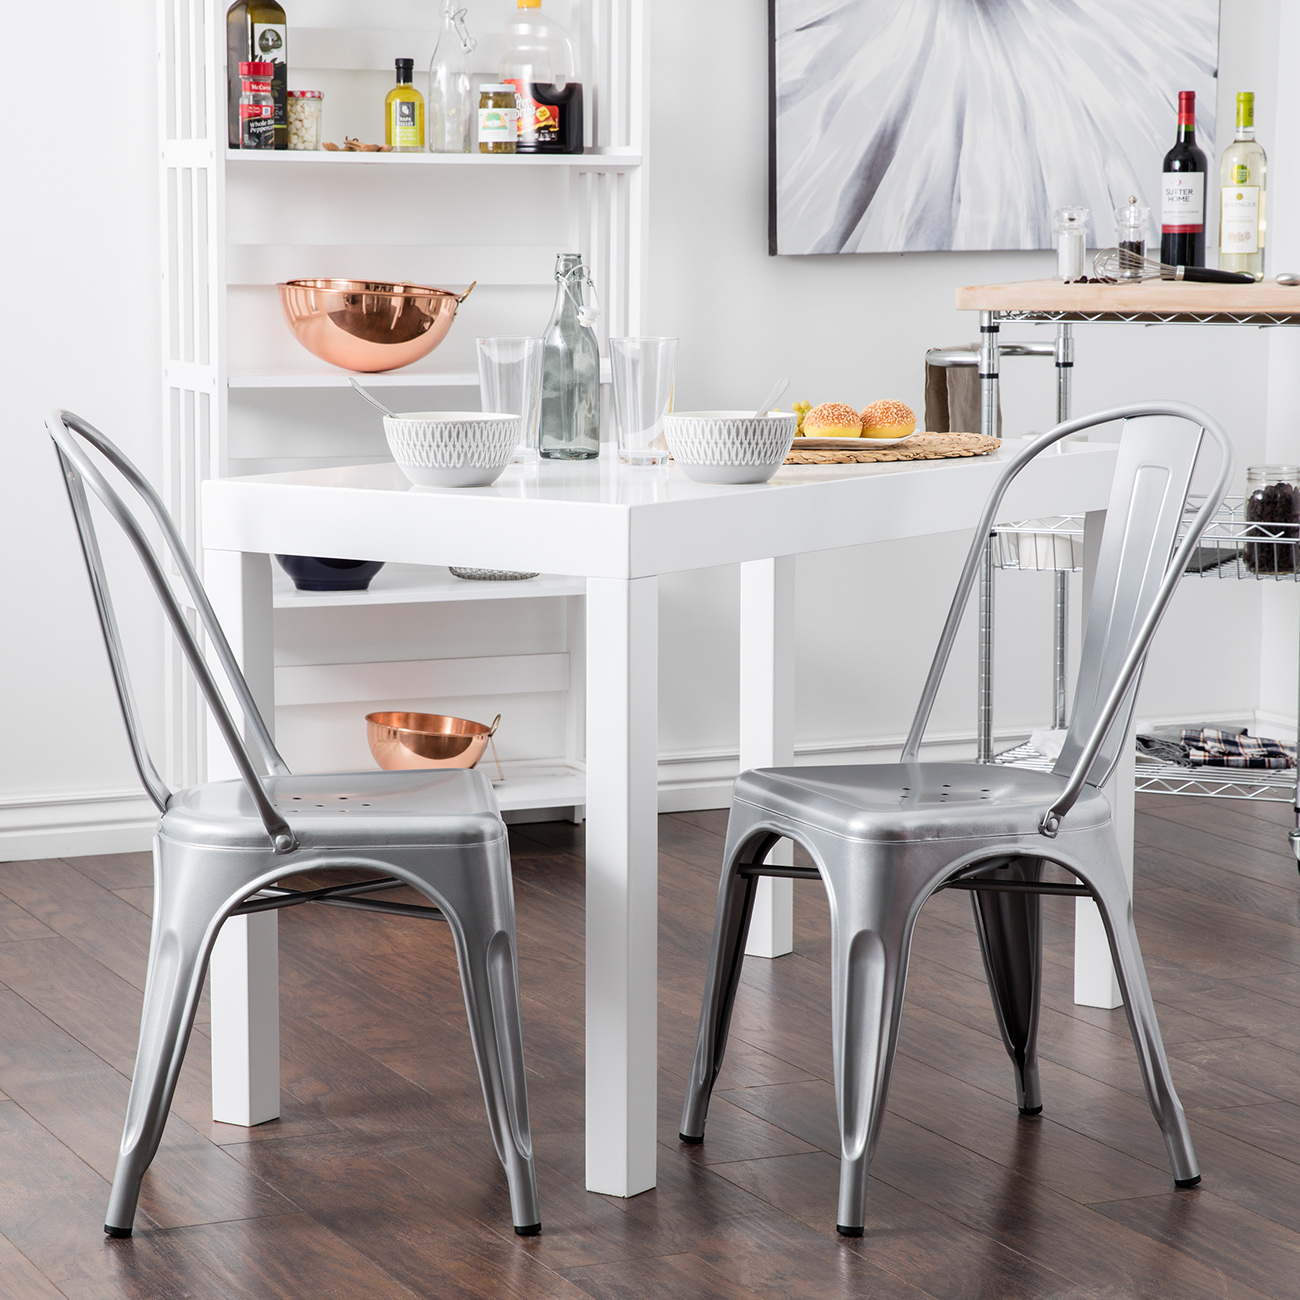 Belleze Indoor Outdoor Kitchen Bar Chairs Set of 4pc Dining Chair, Silver